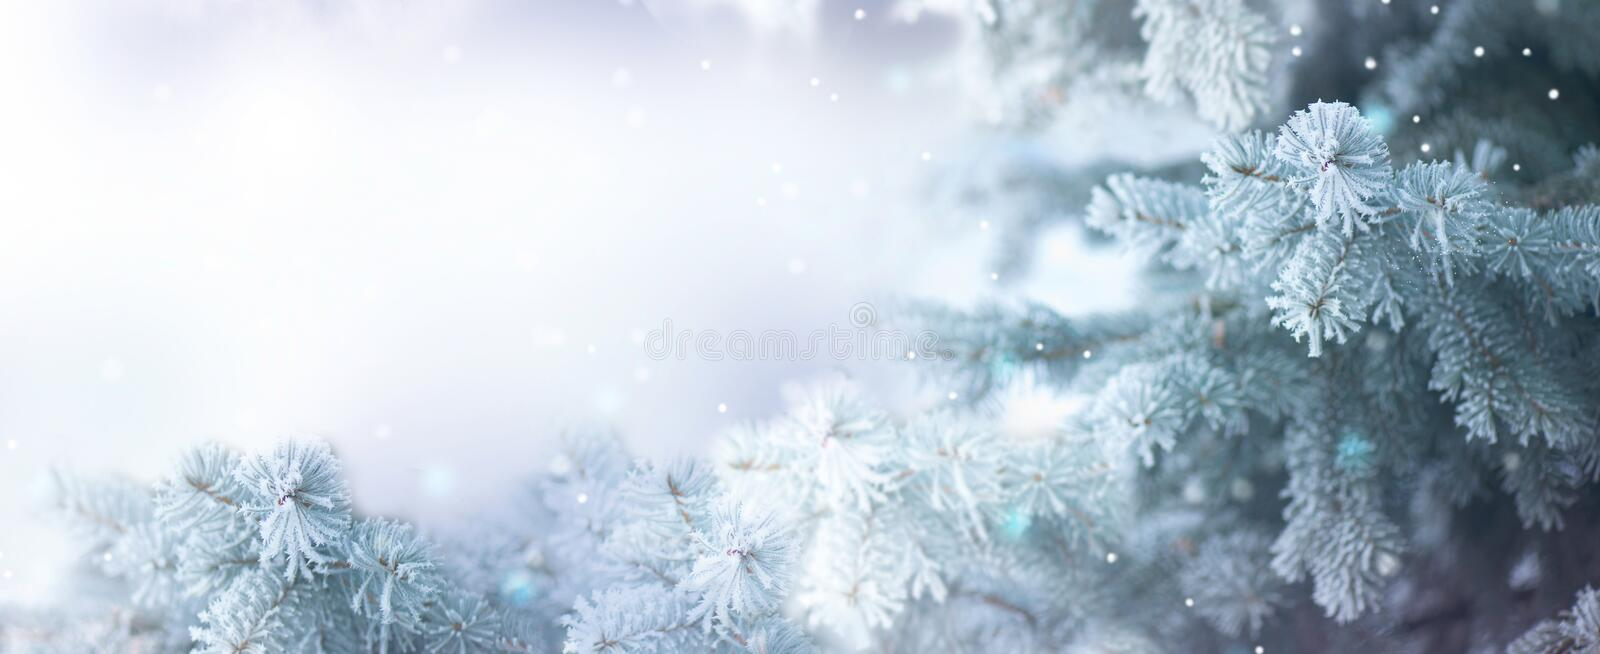 Winter tree holiday snow background royalty free stock images